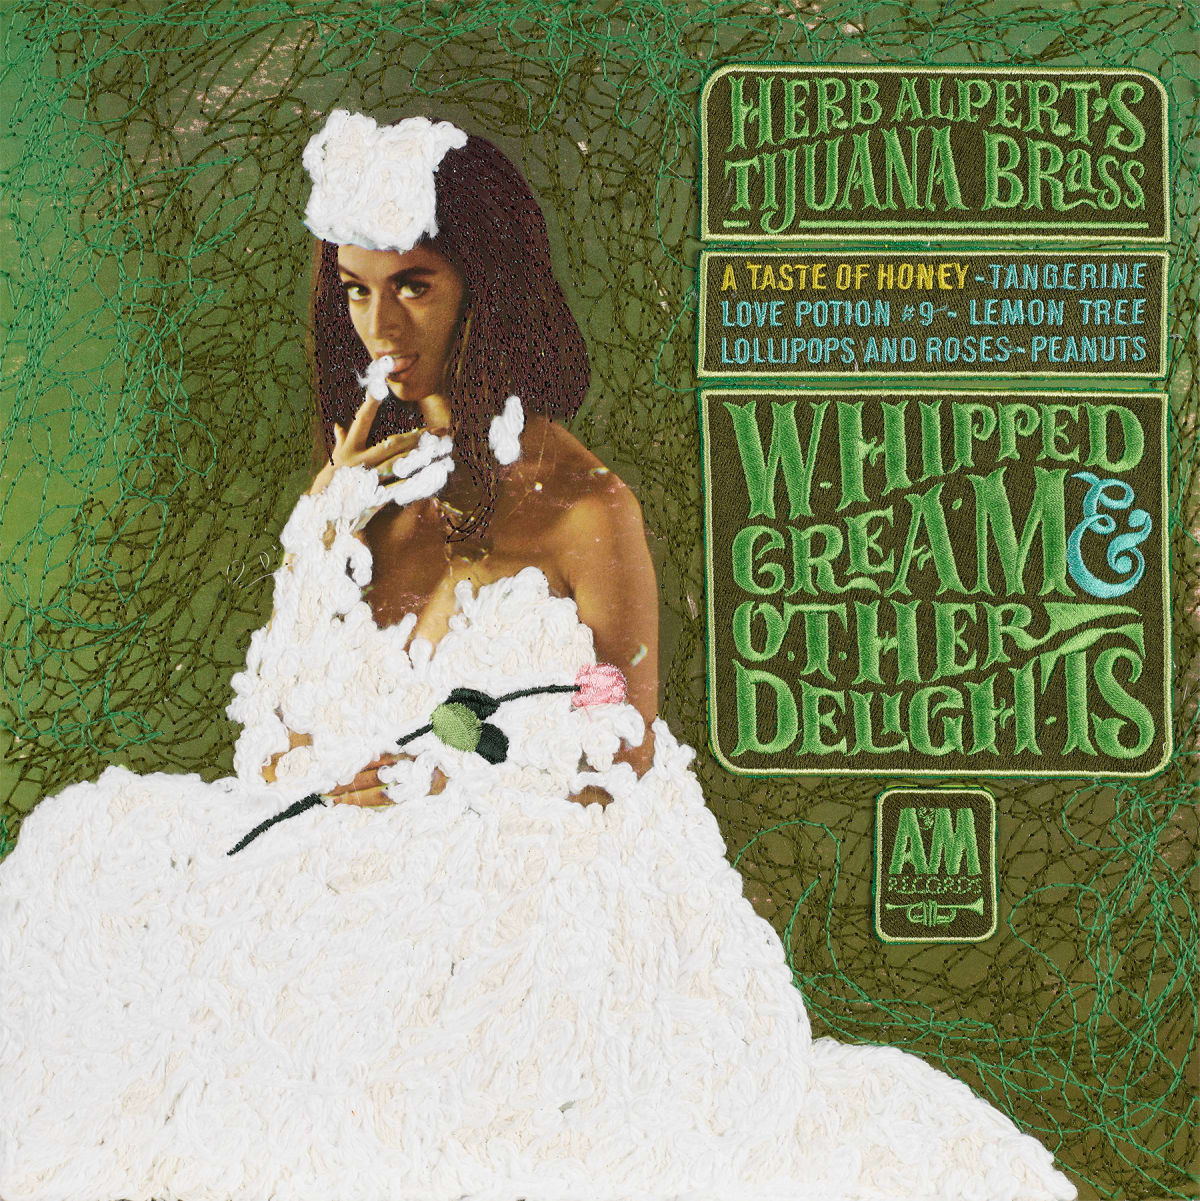 Stephen Wilson, Whipped Cream & Other Delights, Herb Alpert, 2019